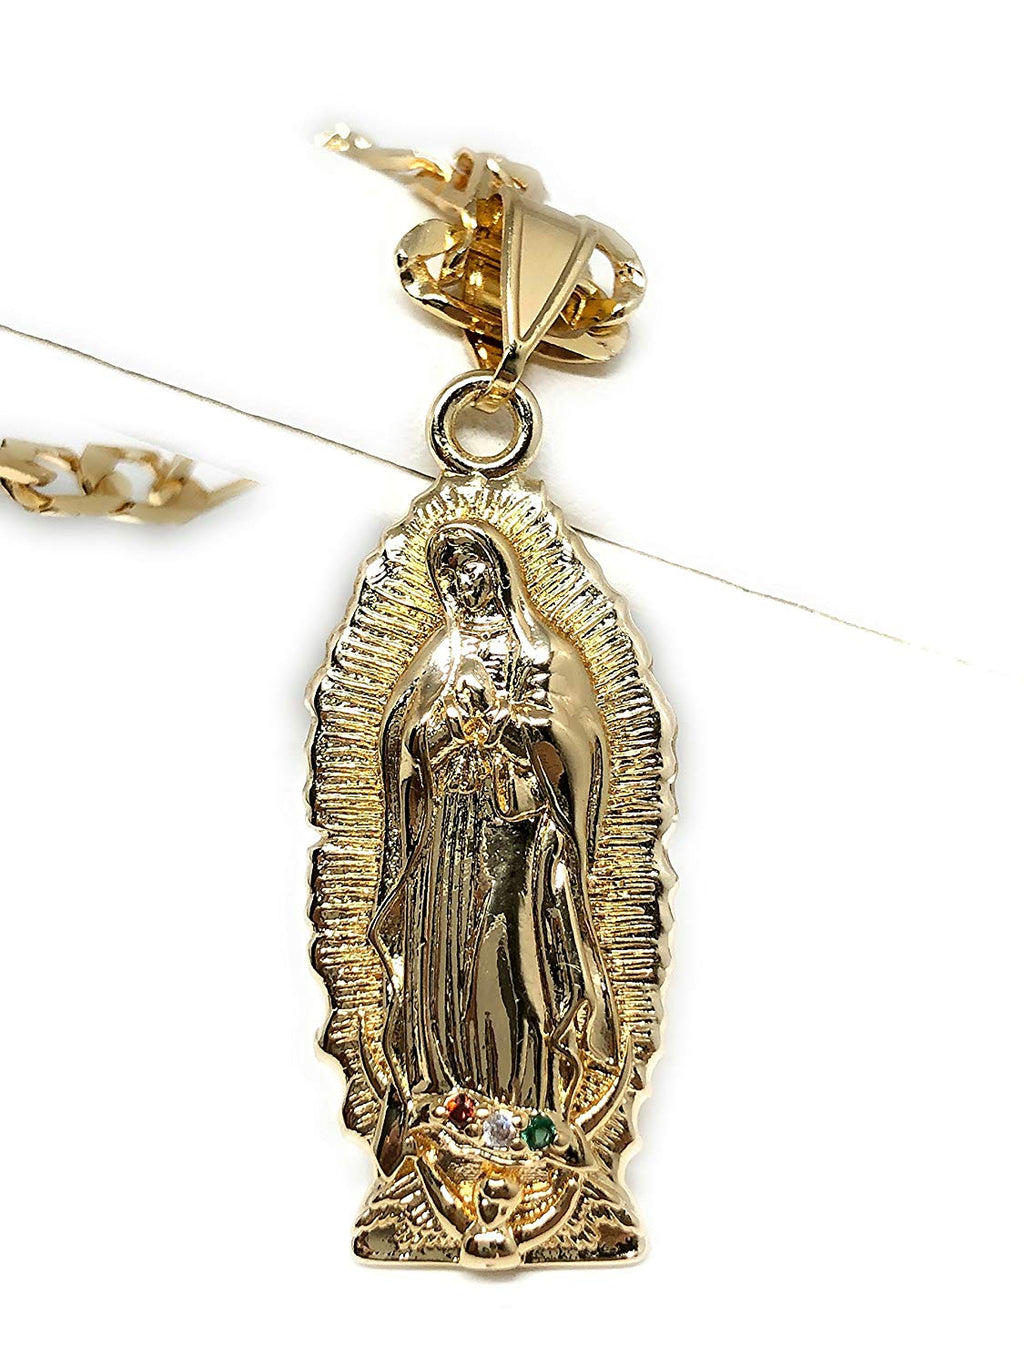 "Gold Plated Virgin Mary Pendant Necklace Figaro 26"" Virgen de Guadalupe Medalla Oro Laminado - Fran & Co. Jewelry"